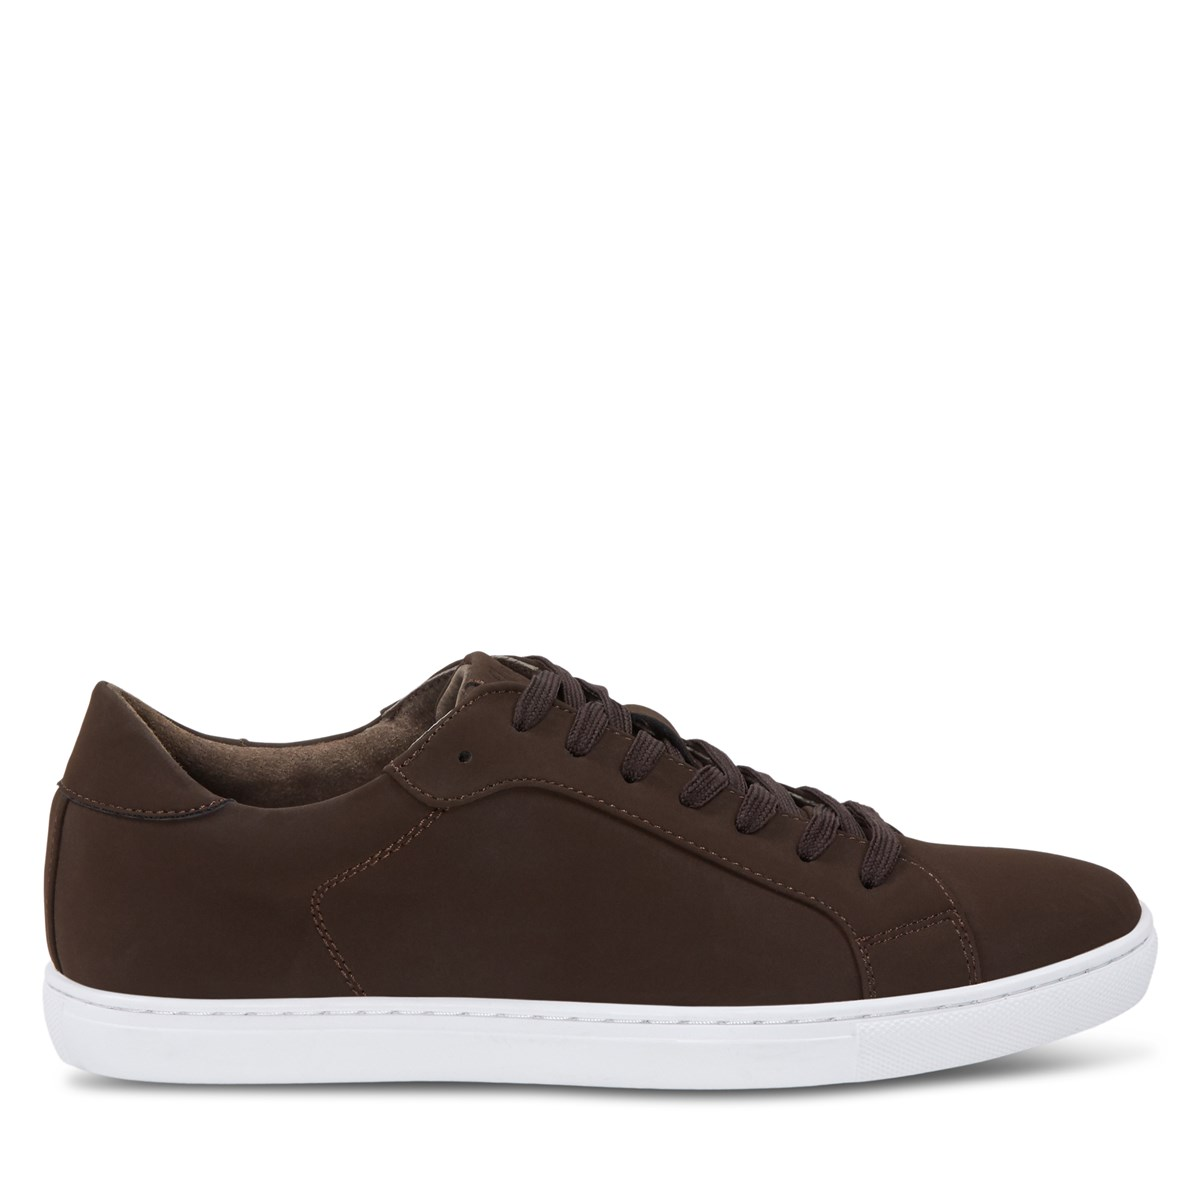 Men's Adriano Sneakers in Dark Brown